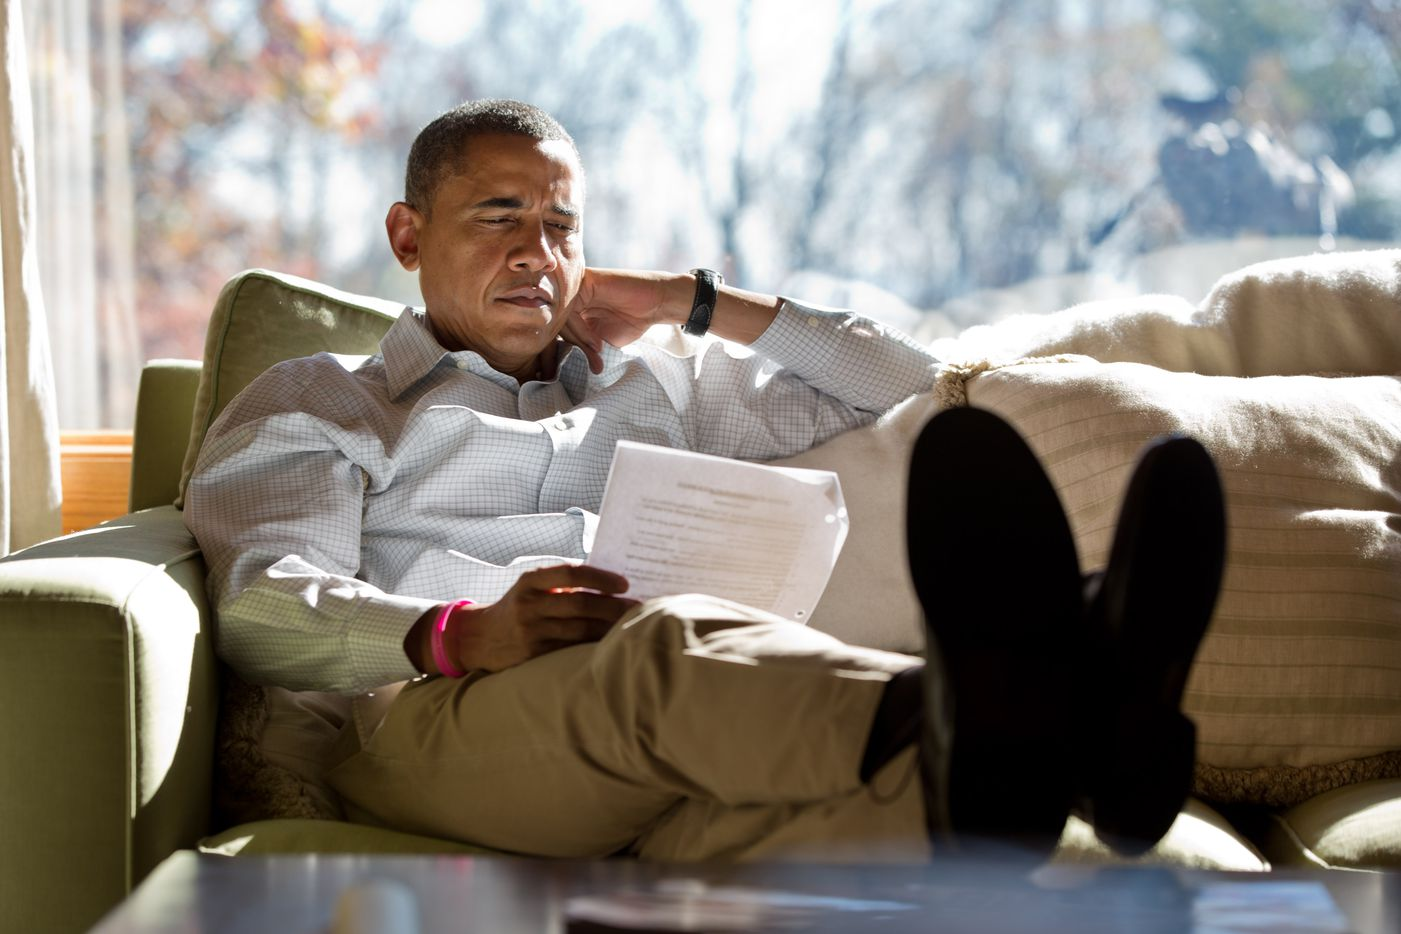 President Barack Obama reads briefing material while meeting with advisors inside his cabin at Camp David, on Sunday, Oct. 21, 2012.